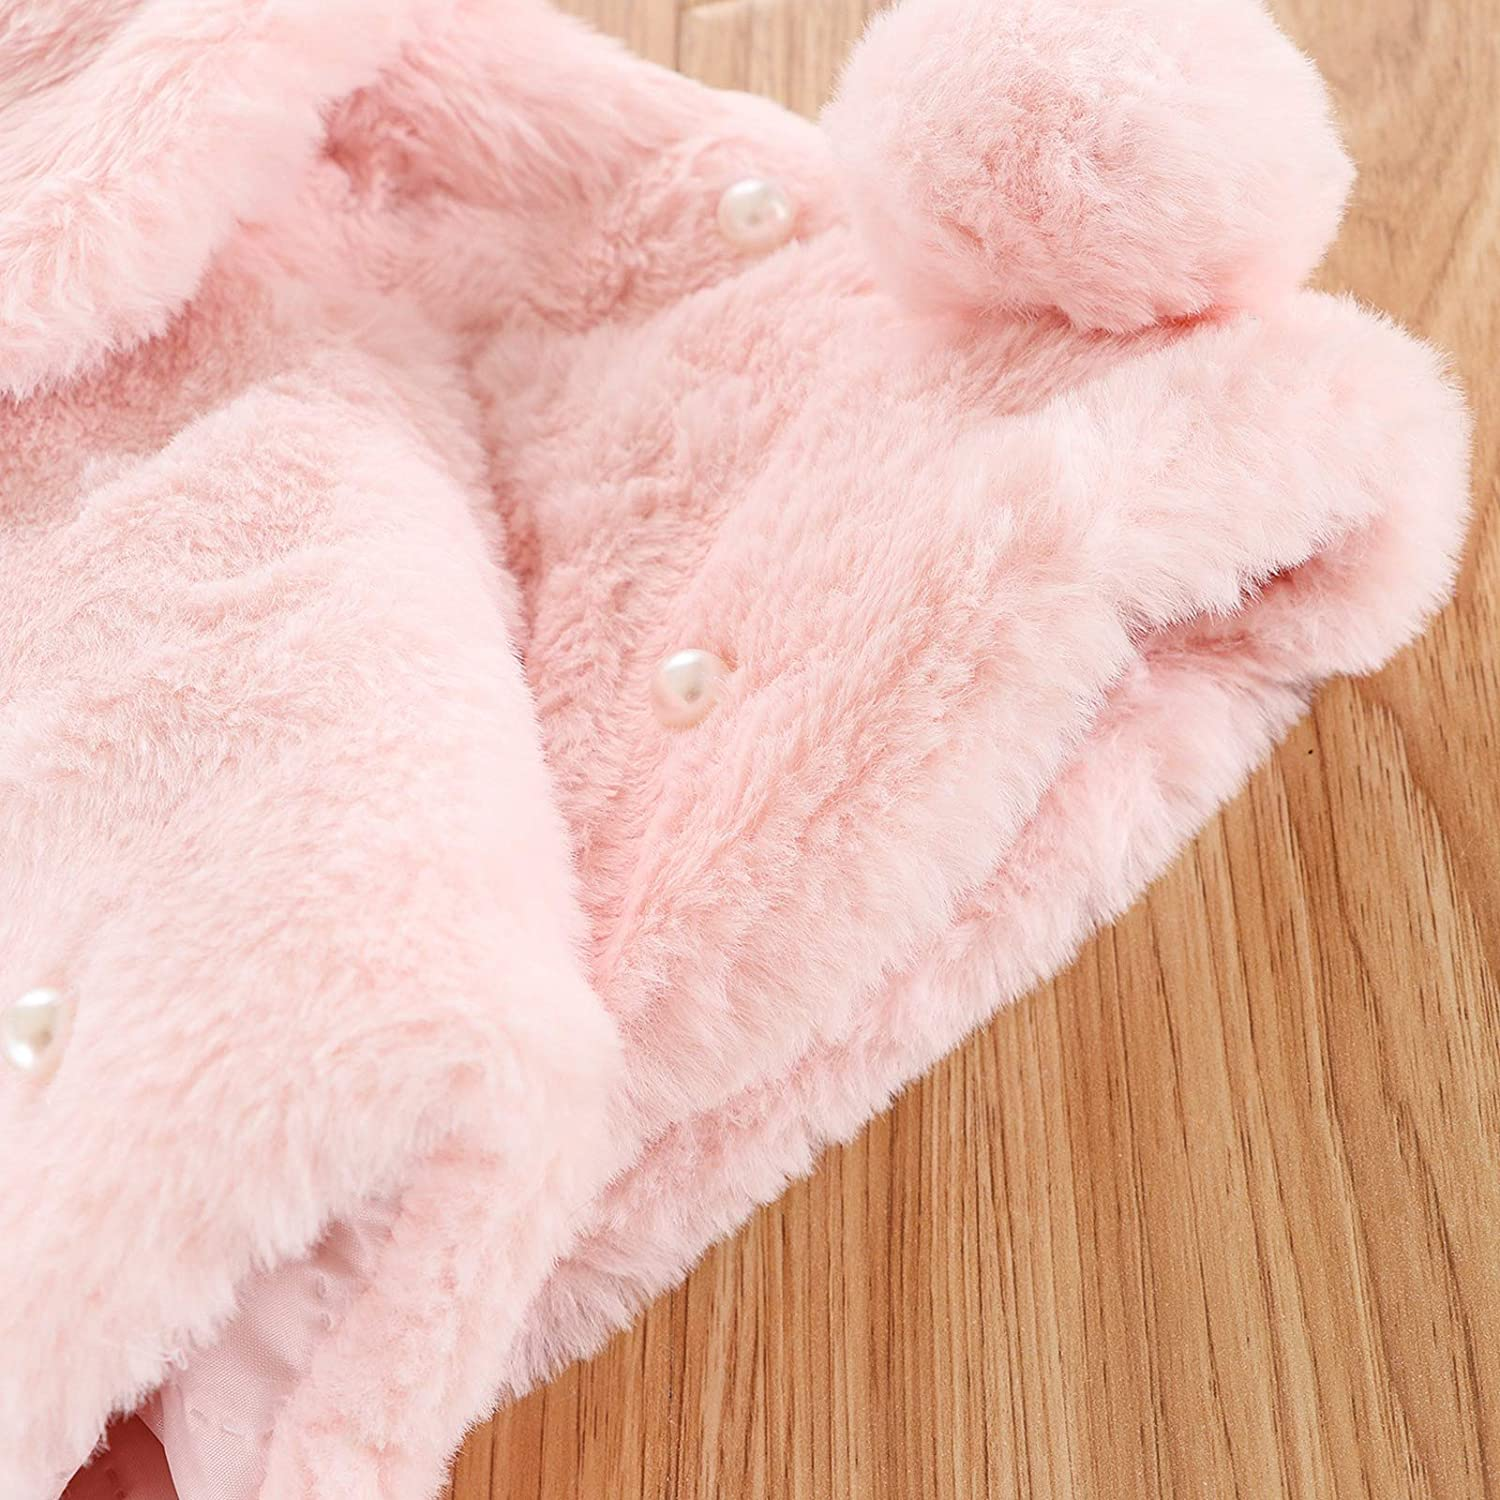 MoccyBabeLee Infant Baby Girls Coat Faux Fur Long Sleeve Cape Cloak Jackets Outwear Warm Winter Clothes 0-4 Years